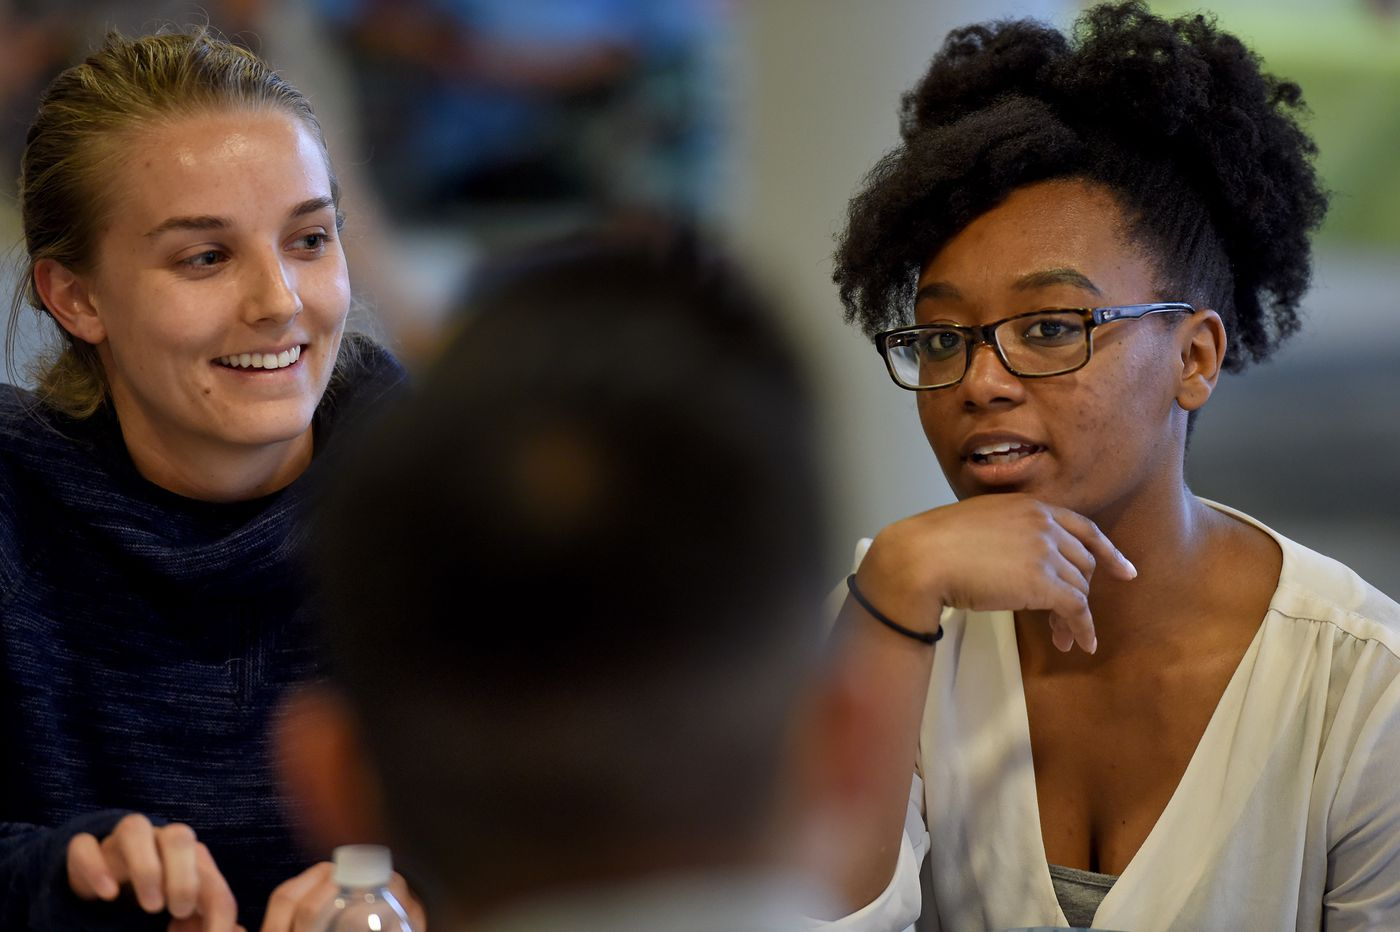 Citywide table talks designed to bring Philadelphians together   Opinion